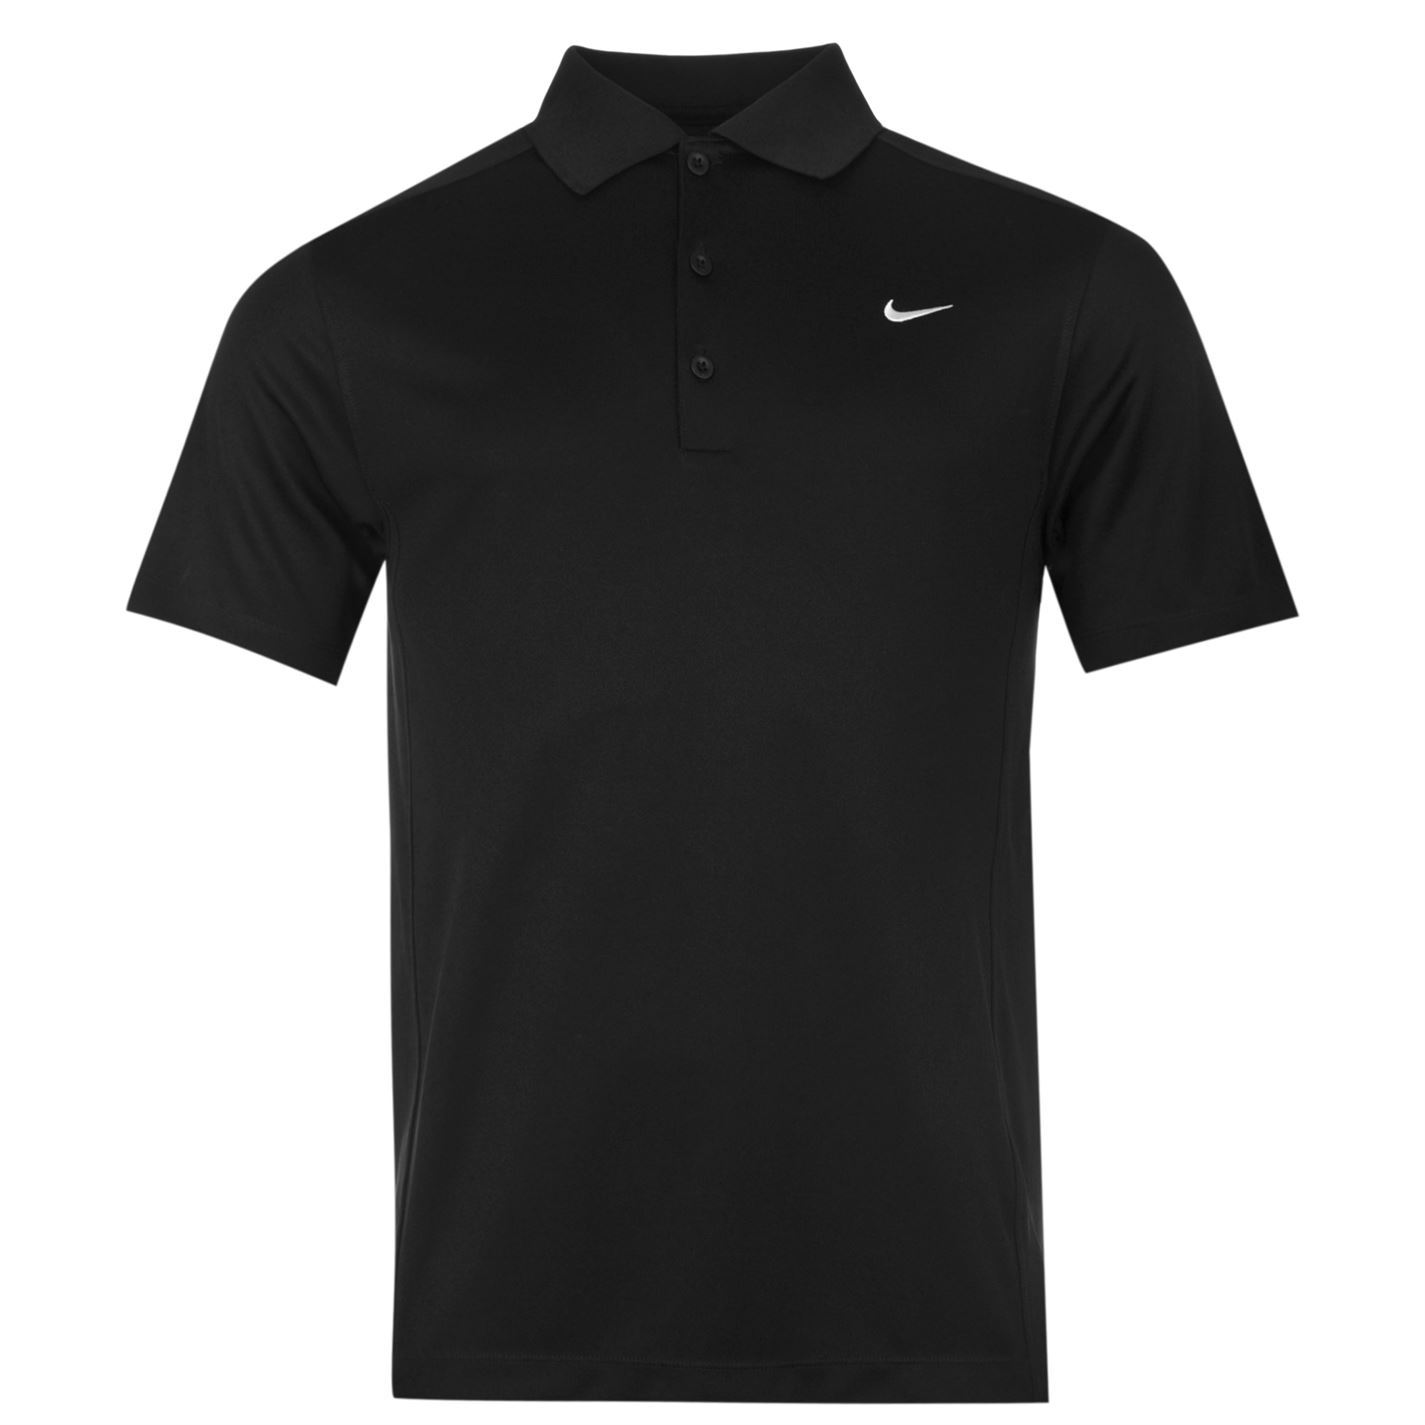 Nike solid golf polo shirt mens black collared t shirt top for Mens collared t shirts